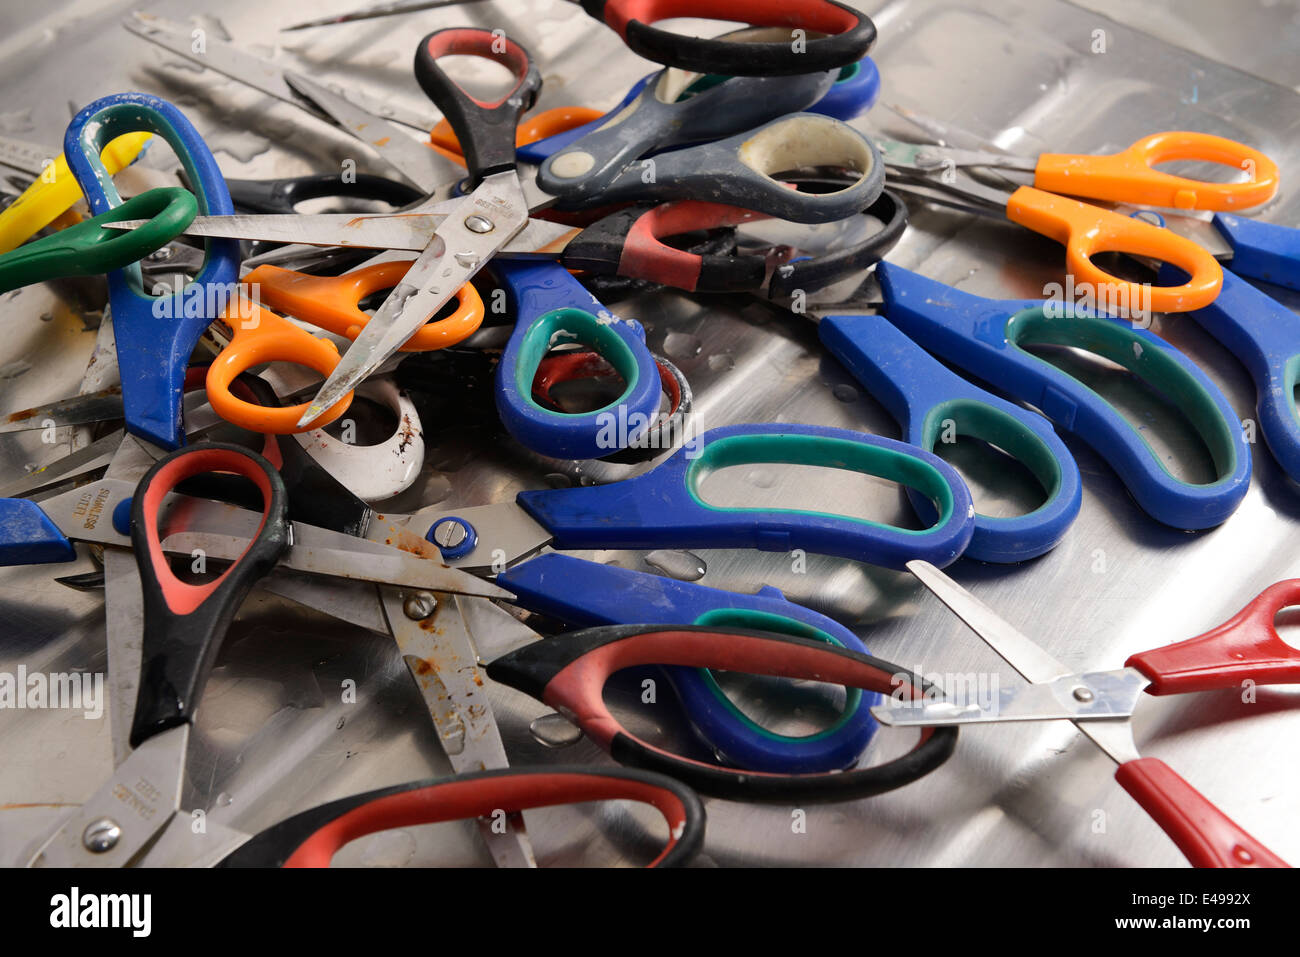 Pile of old scissors - Stock Image